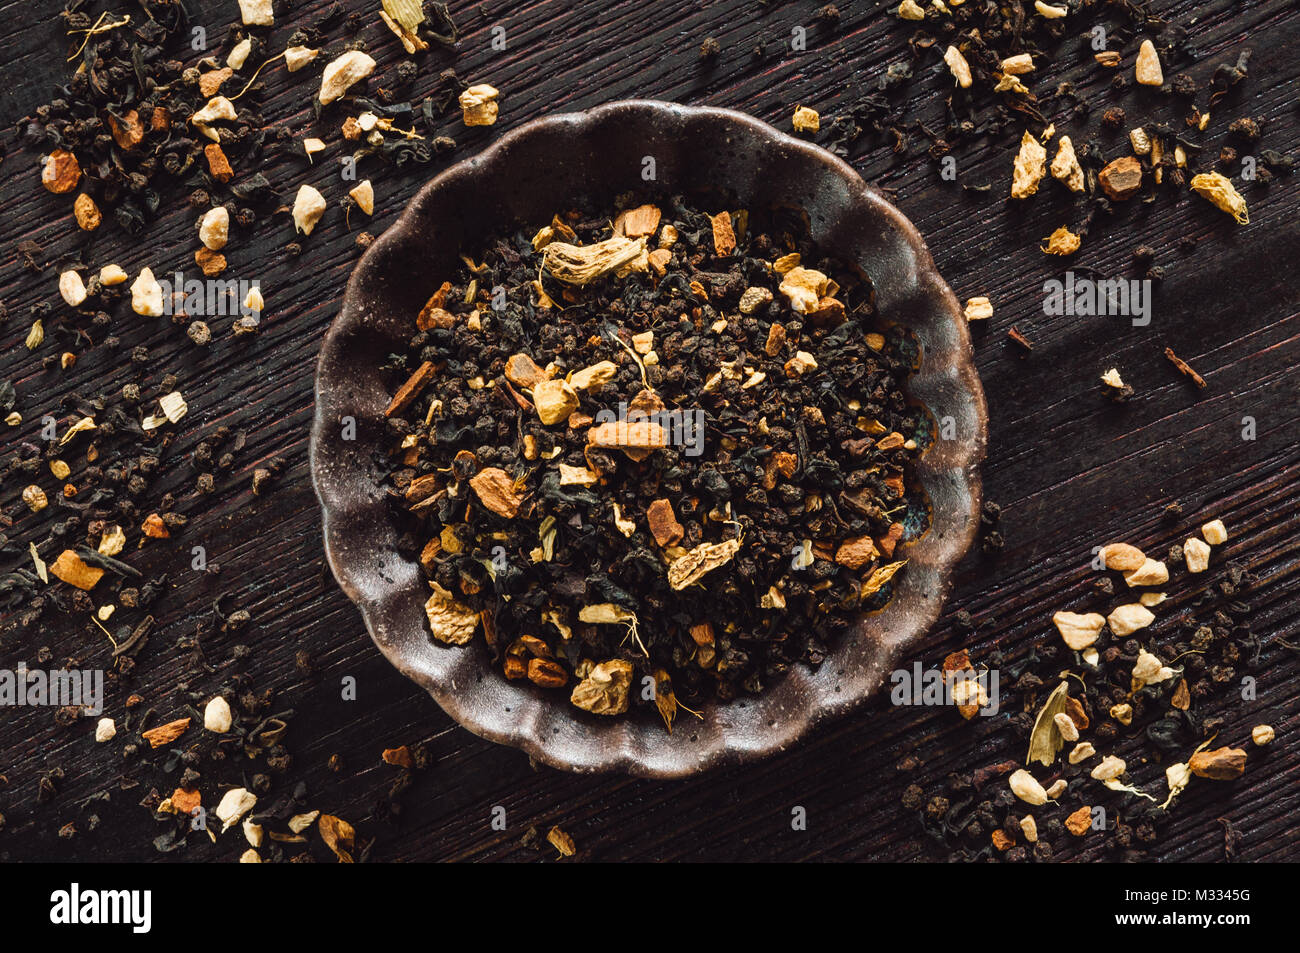 Ceramic Bowl of Masala Chai on Dark Wooden Table - Stock Image